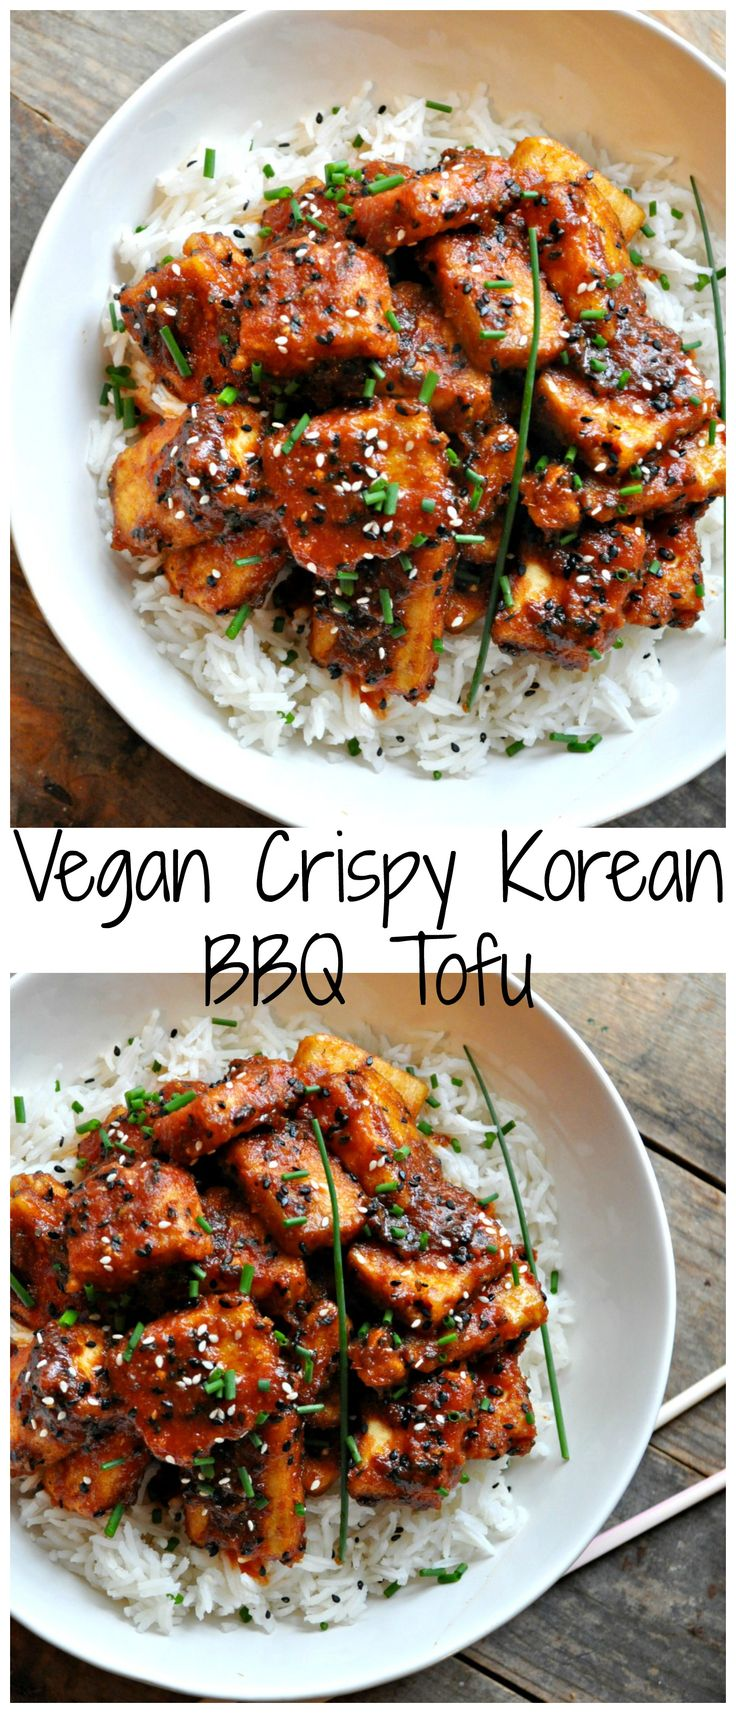 Vegano crujiente coreano BBQ Tofu   – Fitness-Food & Recipes (gesund & vegan)